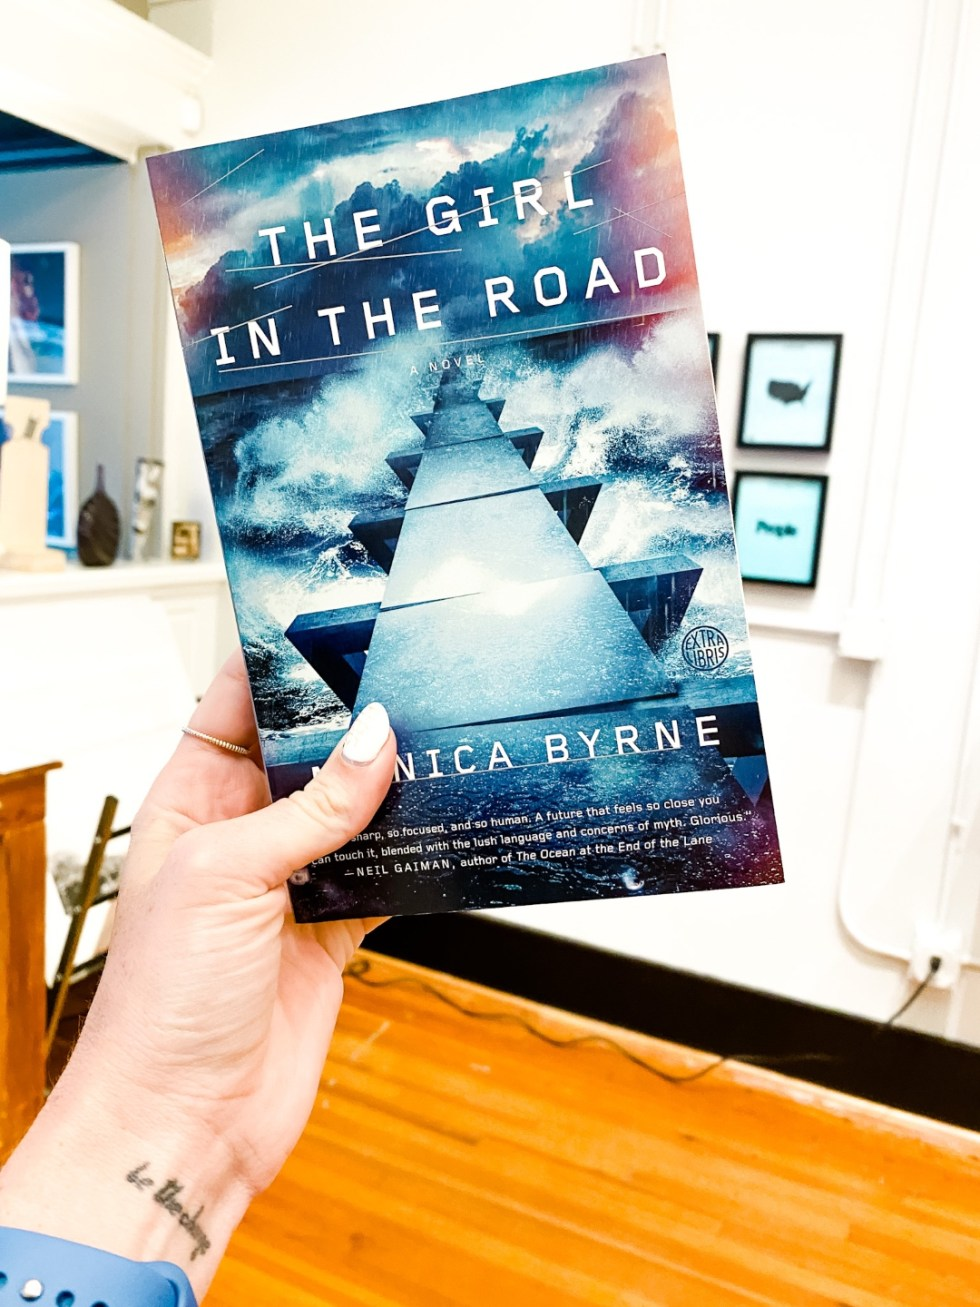 "Date Night at the The Streetery in Downtown Durham - I'm Fixin' To - @mbg0112 |The Streetery in Downtown Durham by popular N.C. blog, I'm Fixin' To: image of a woman holding the book ""The Girl In The Road"" in the PS118 gallery and event space."